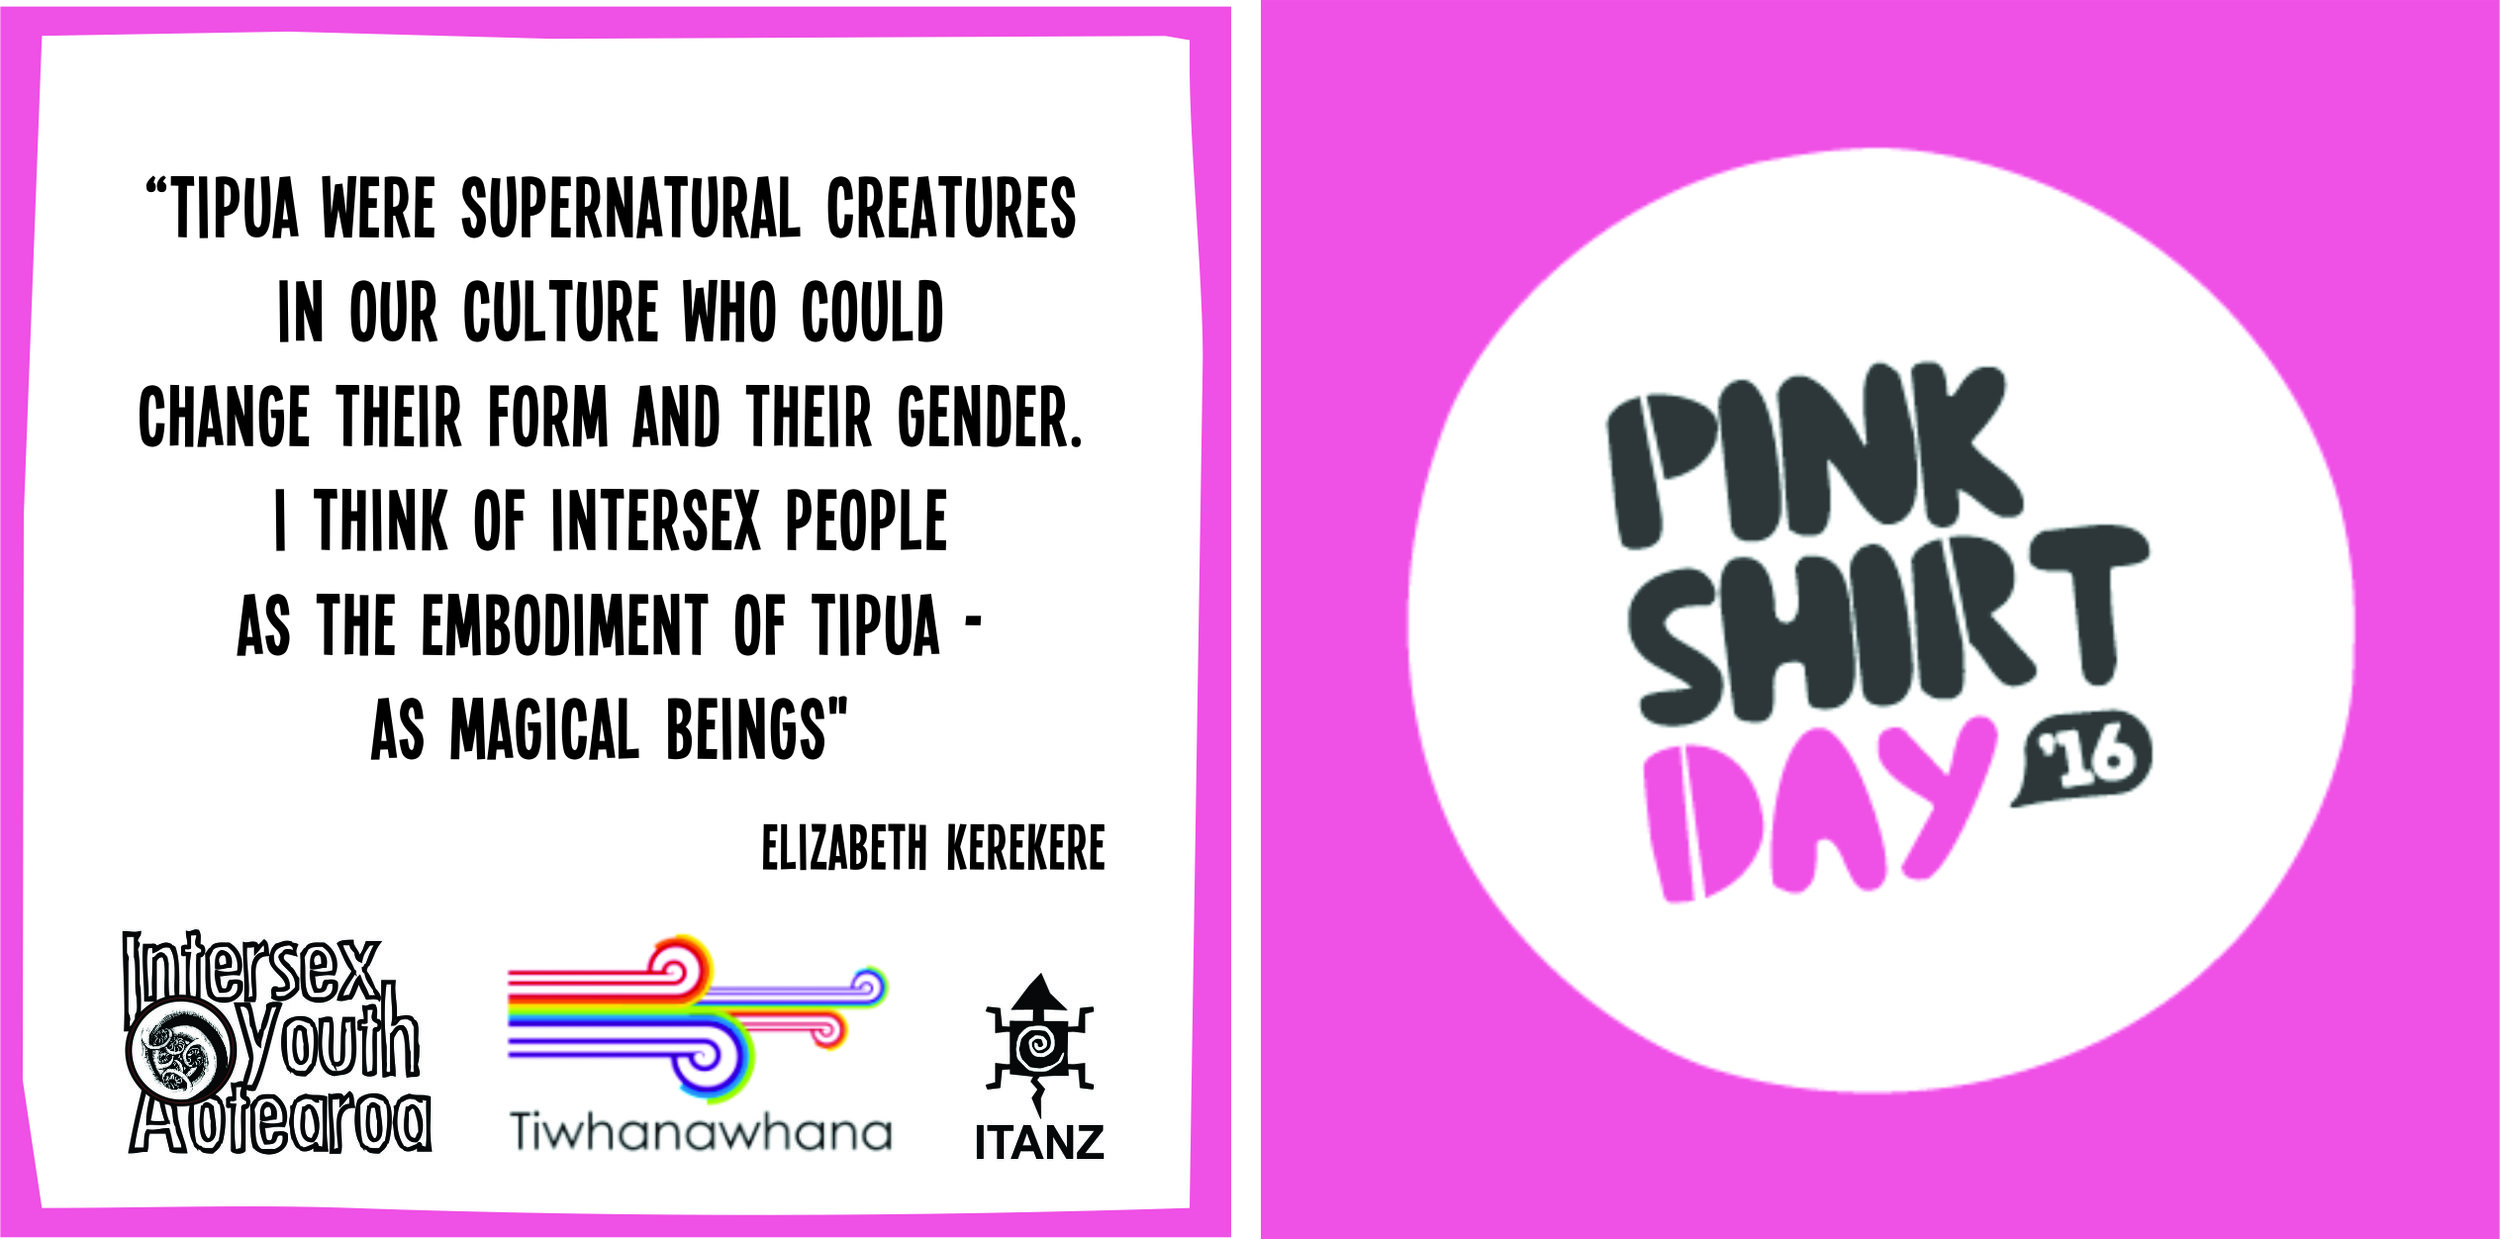 """A white box with a pink border on the left shows black text saying """"Tipua were spiritual creatures in our culture who could change their form and their gender. I think of intersex people as the embodiment of Tipua - as magical beings."""" Elizabeth Kerekere. Below the text are three logos in a line, Intersex Youth Aotearoa, Tiwhanawhana and ITANZ. On the right there is a pink box with a white circle. Inside the circle there are the words Pink Shirt Day with '16 in a small black speech bubble"""